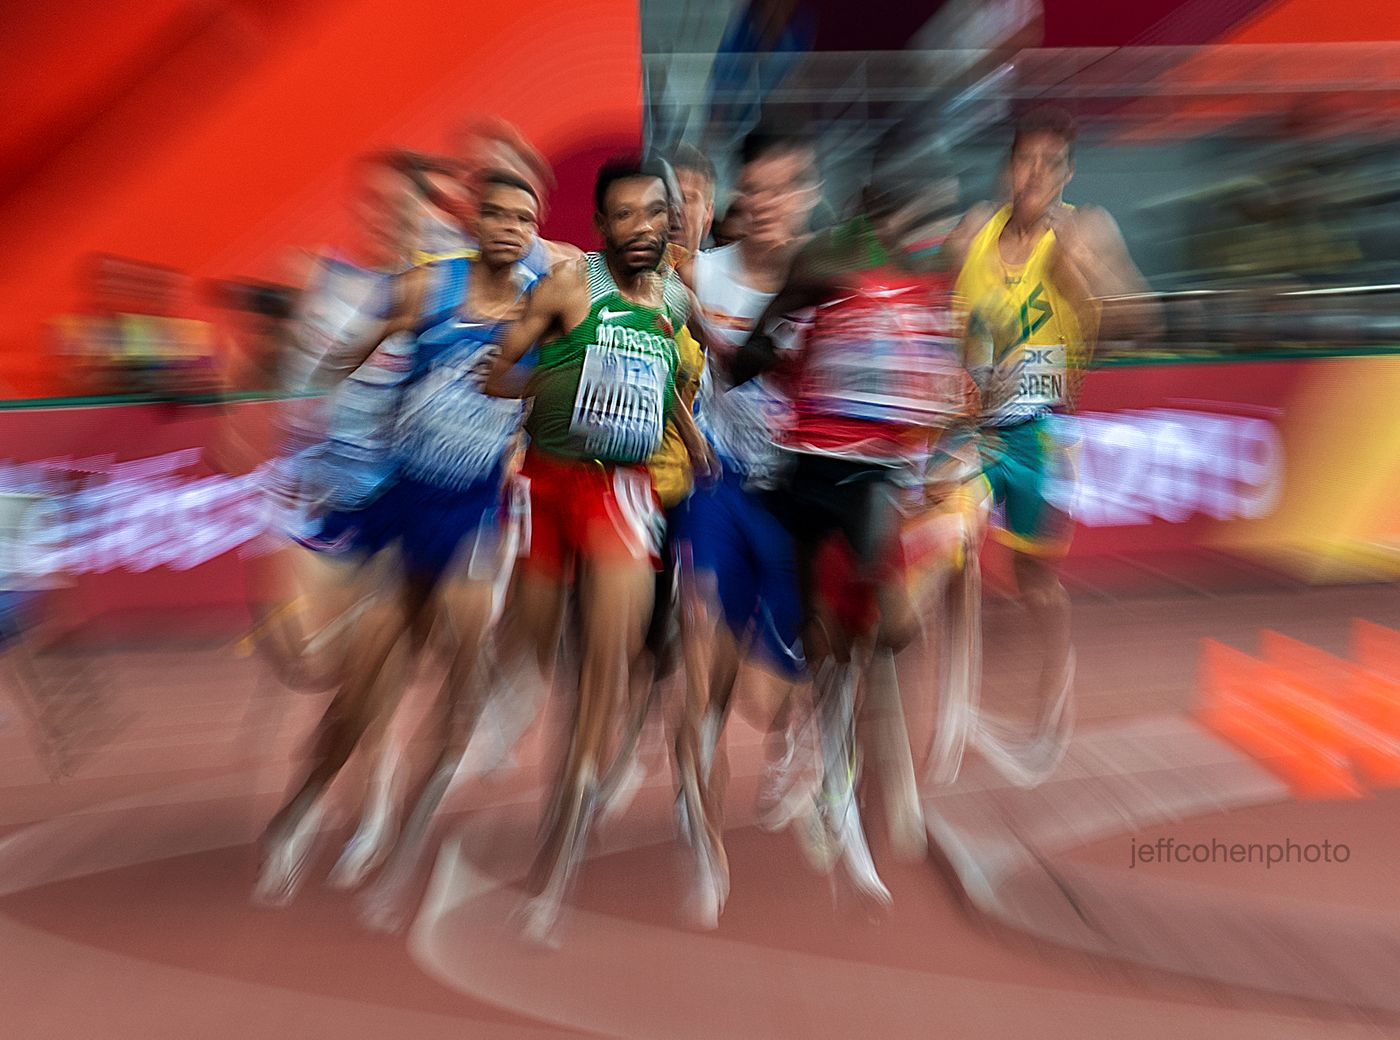 2019-DOHA-WC-day-8-1150-1500m-blur--jeff-cohen-photo--web.jpg